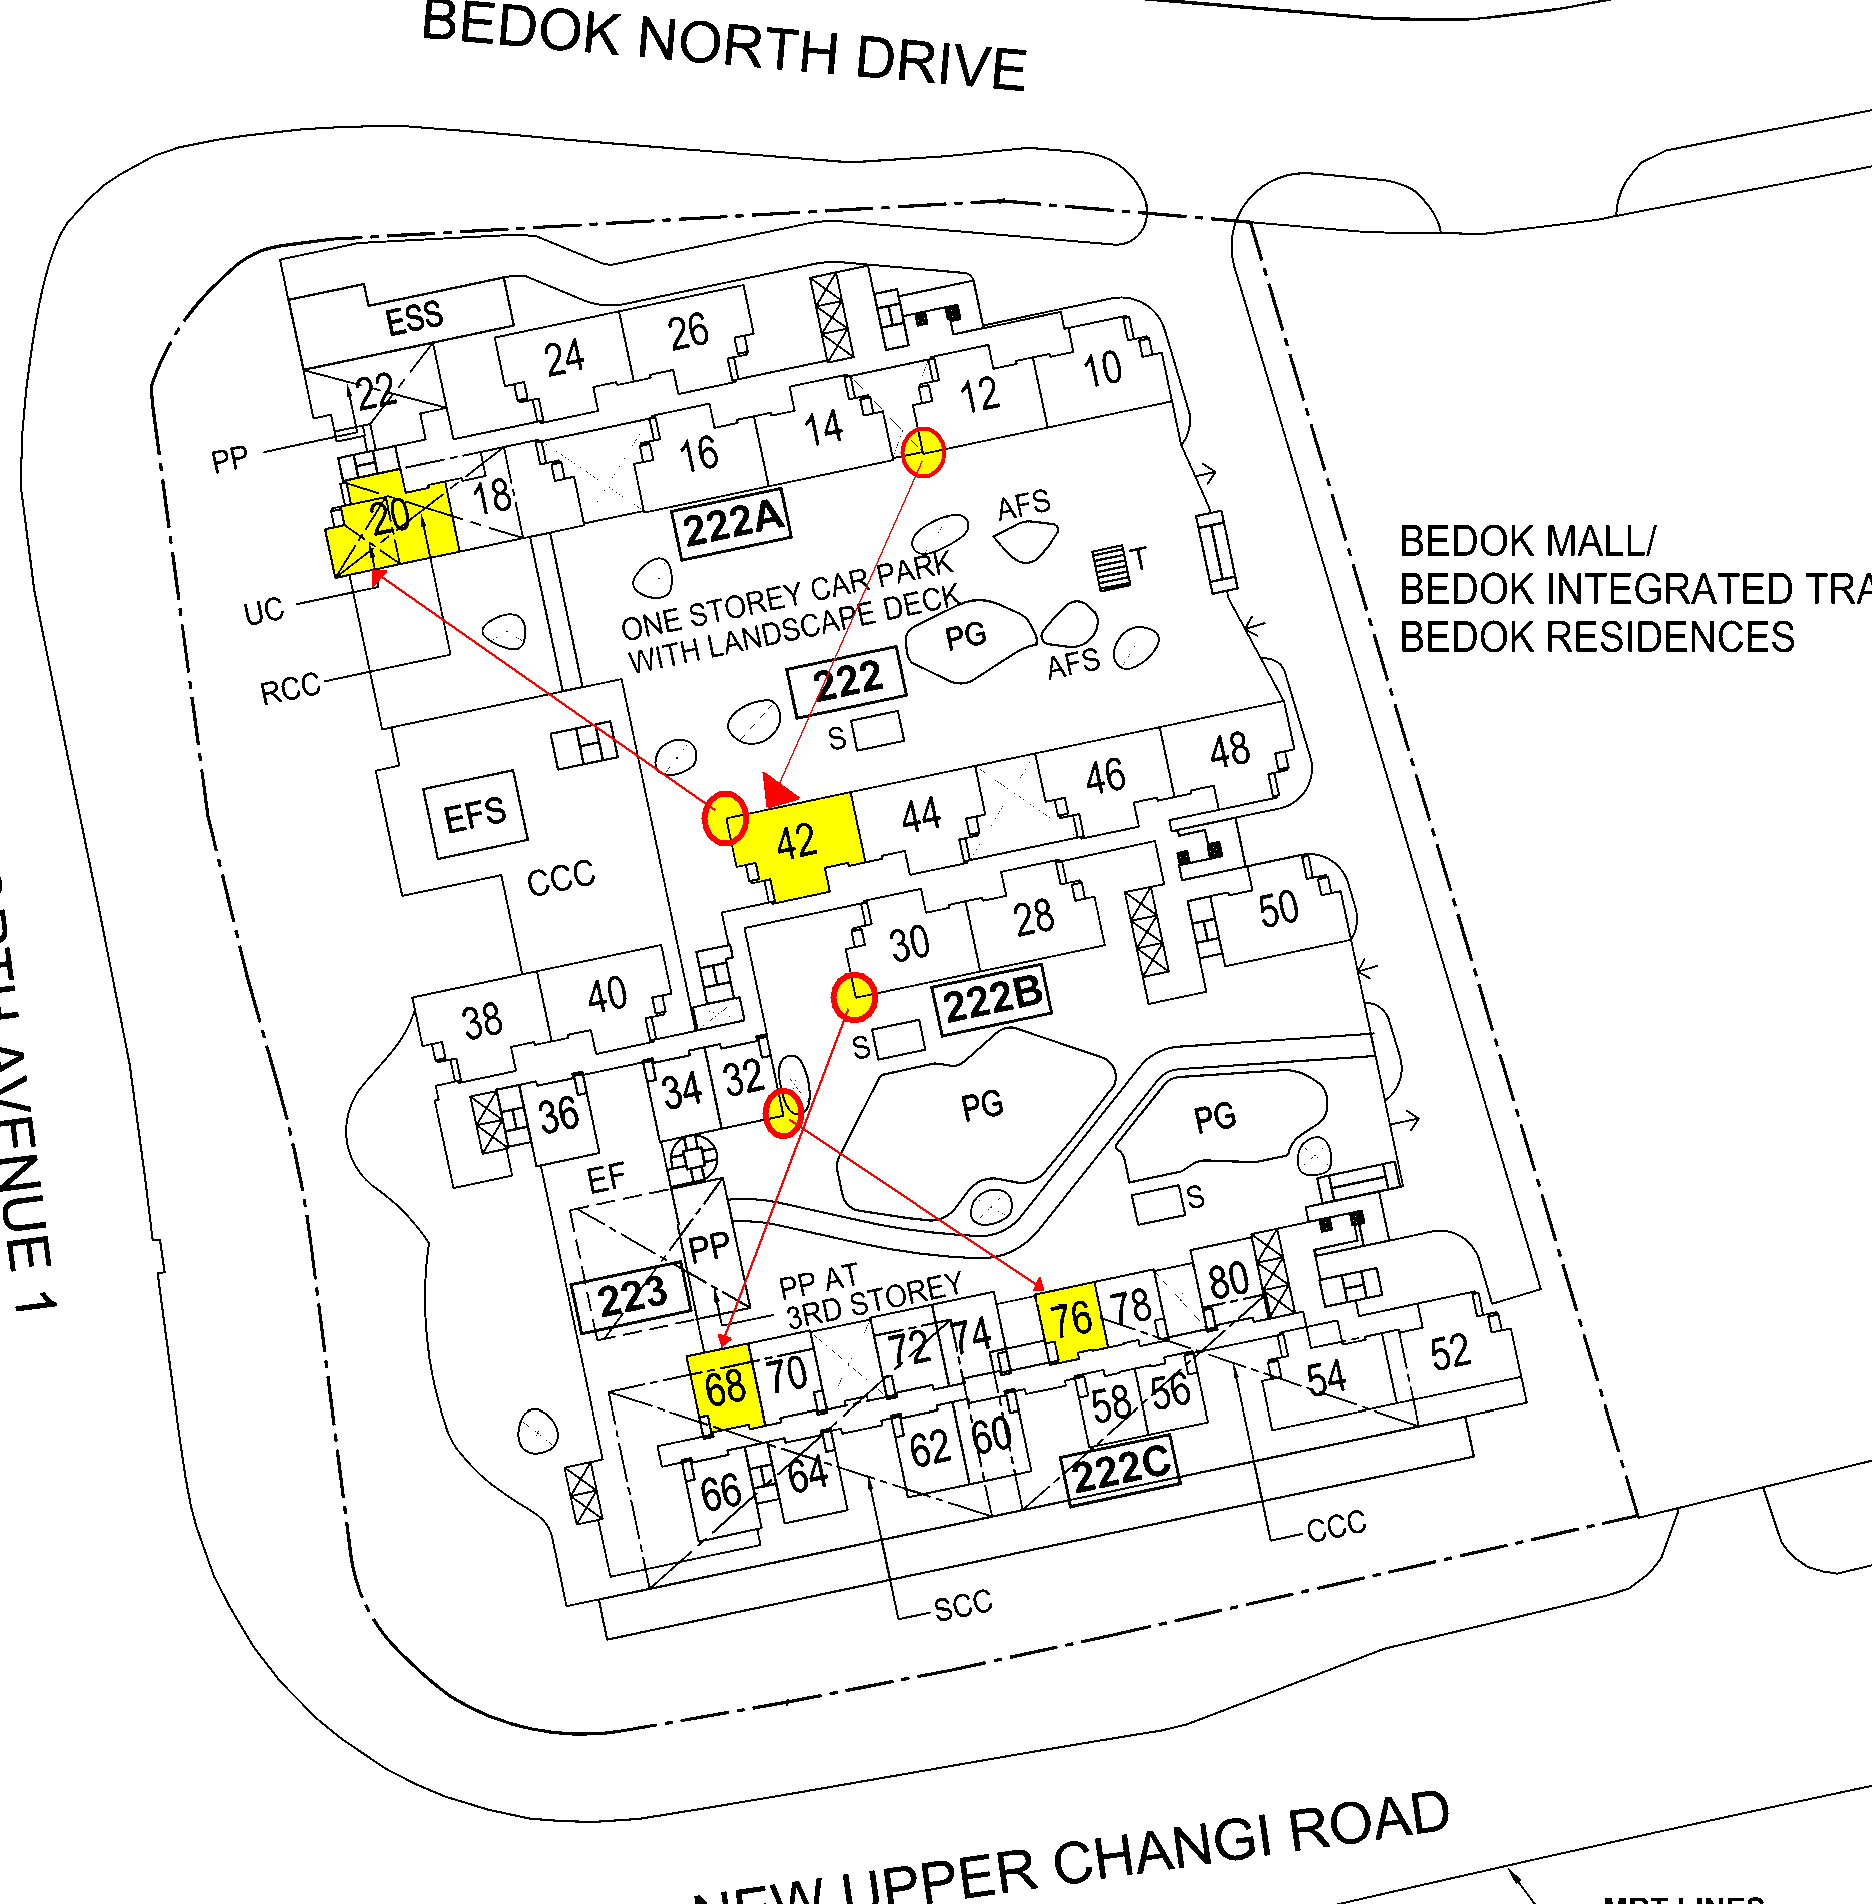 Hdb Bedok Beacon Bto Launched In November 2016 Singapore Property Review Fengshui Geomancy Net